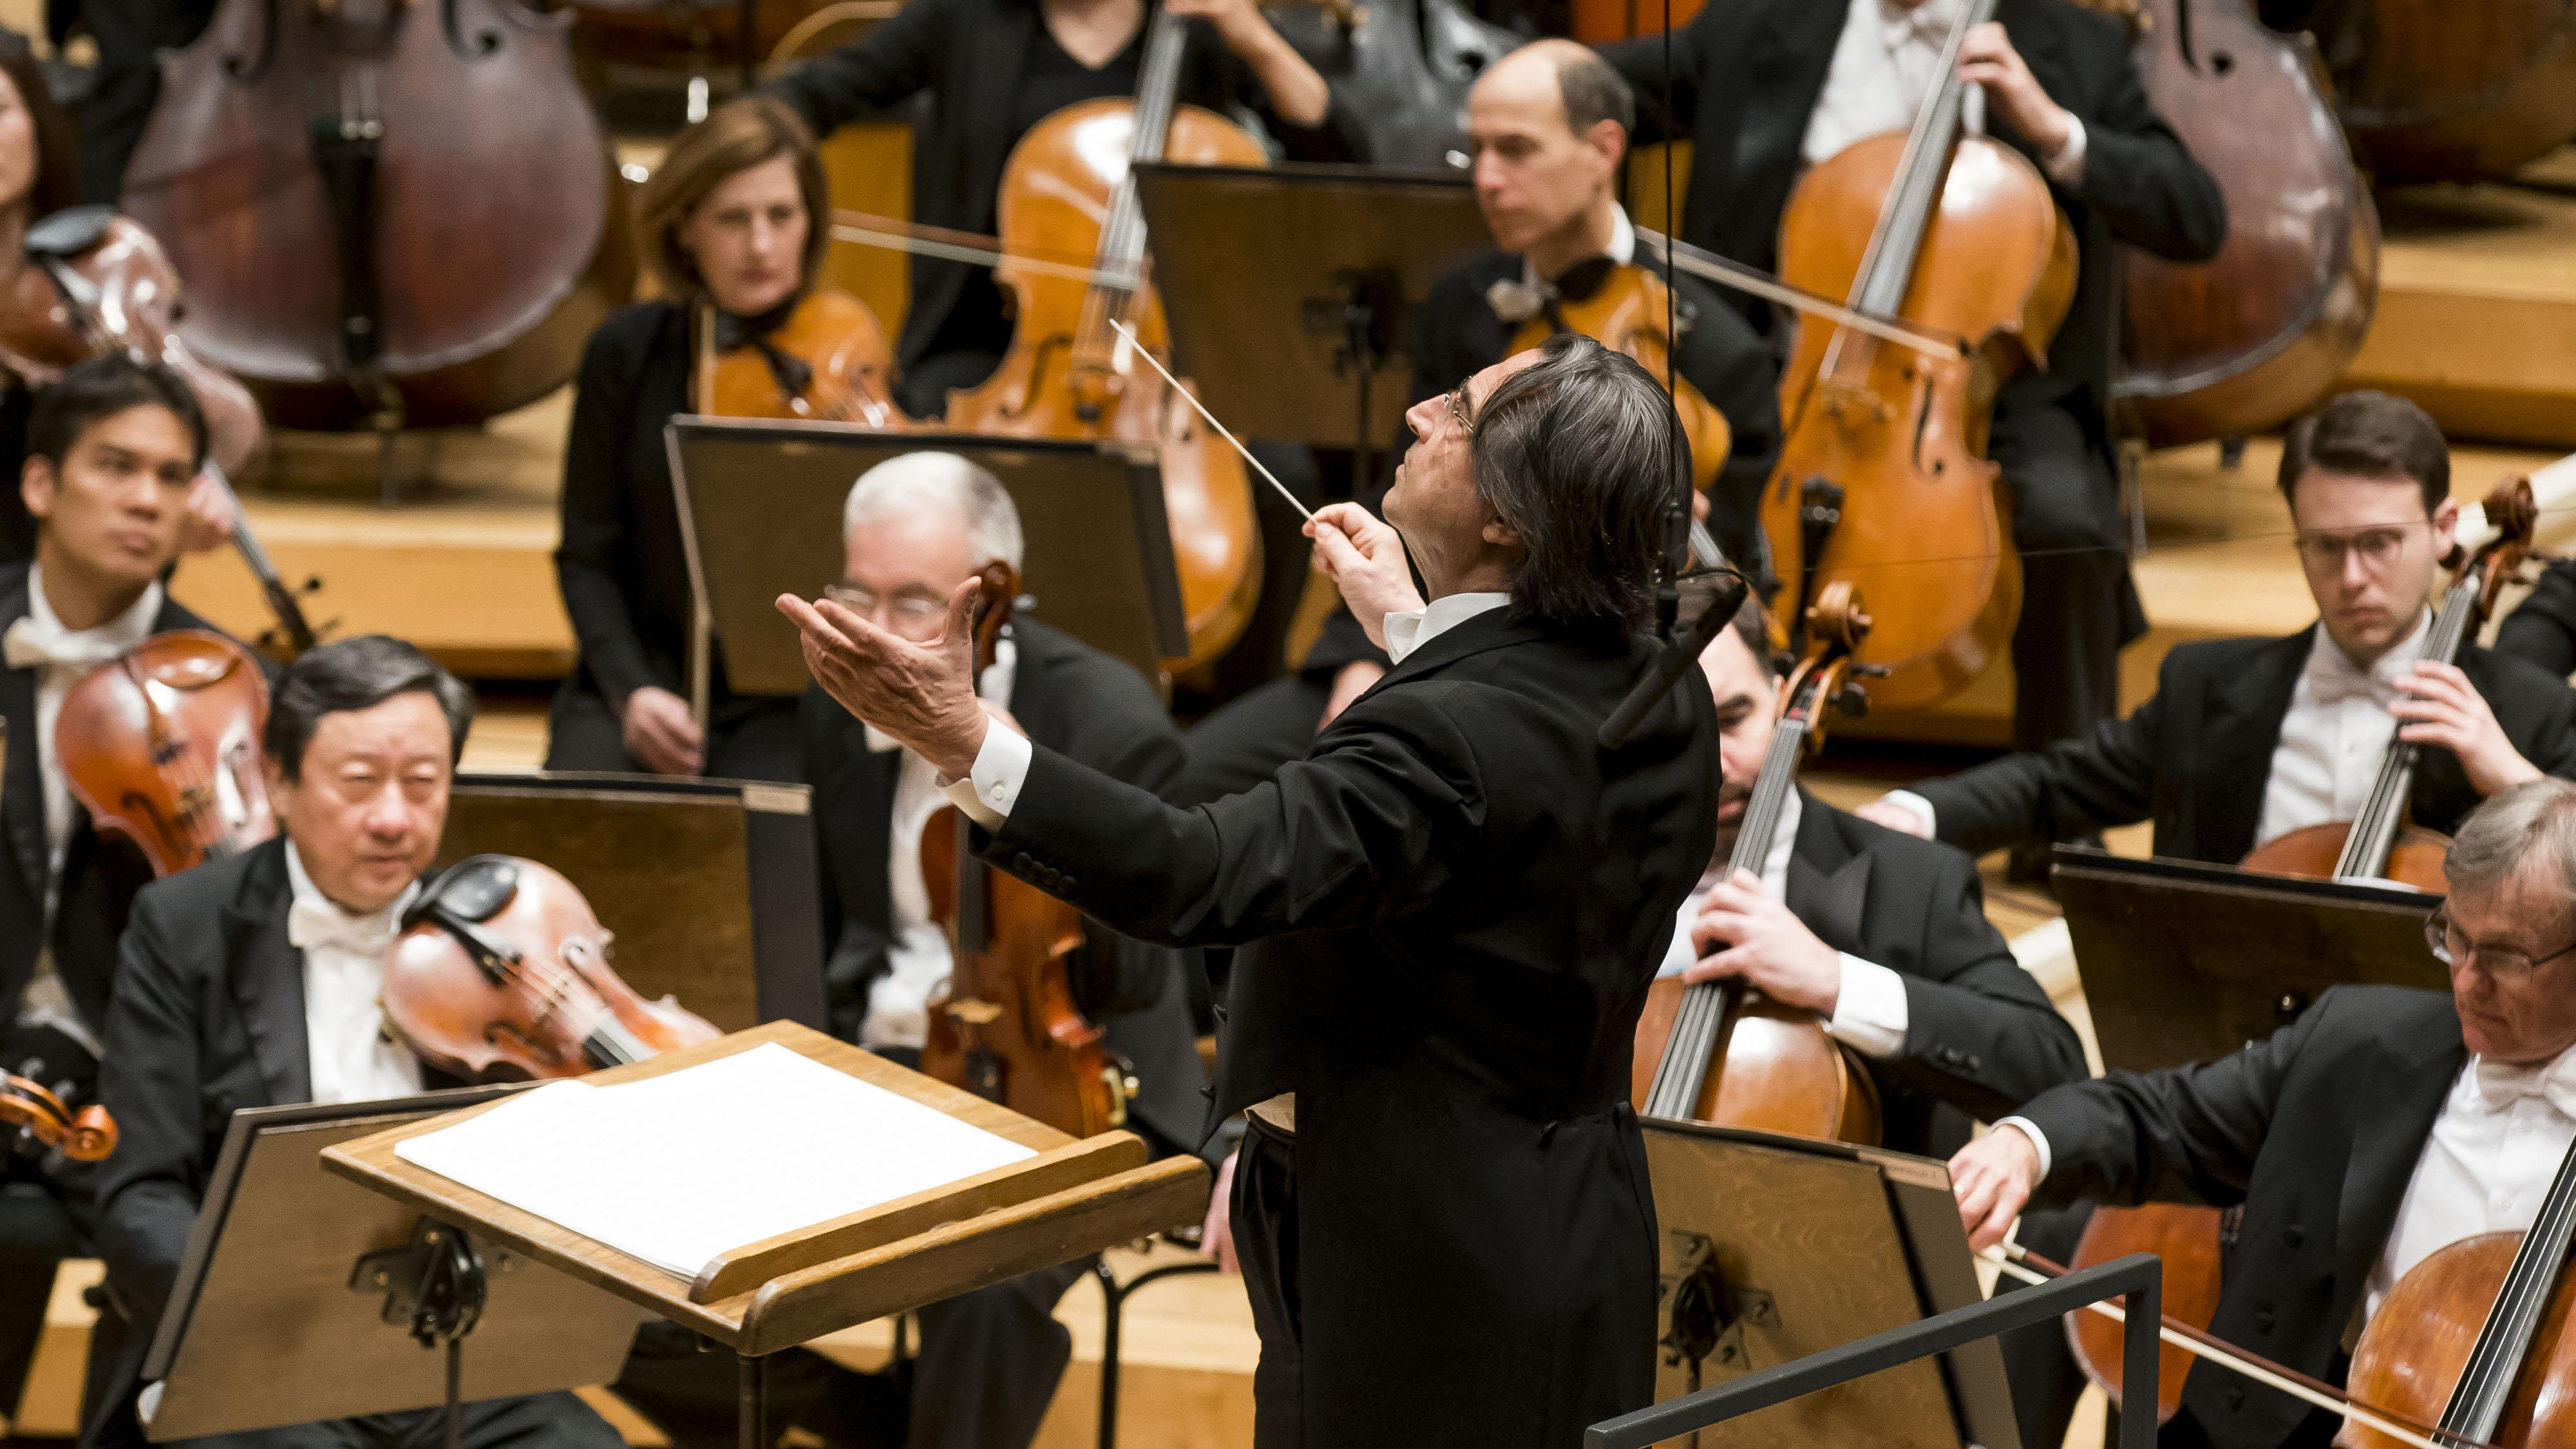 Zell Music Director Riccardo Muti leads the Chicago Symphony Orchestra in a program of works by Debussy and Tchaikovsky in the final weekend of his April residency at Symphony Center. (© Todd Rosenberg)